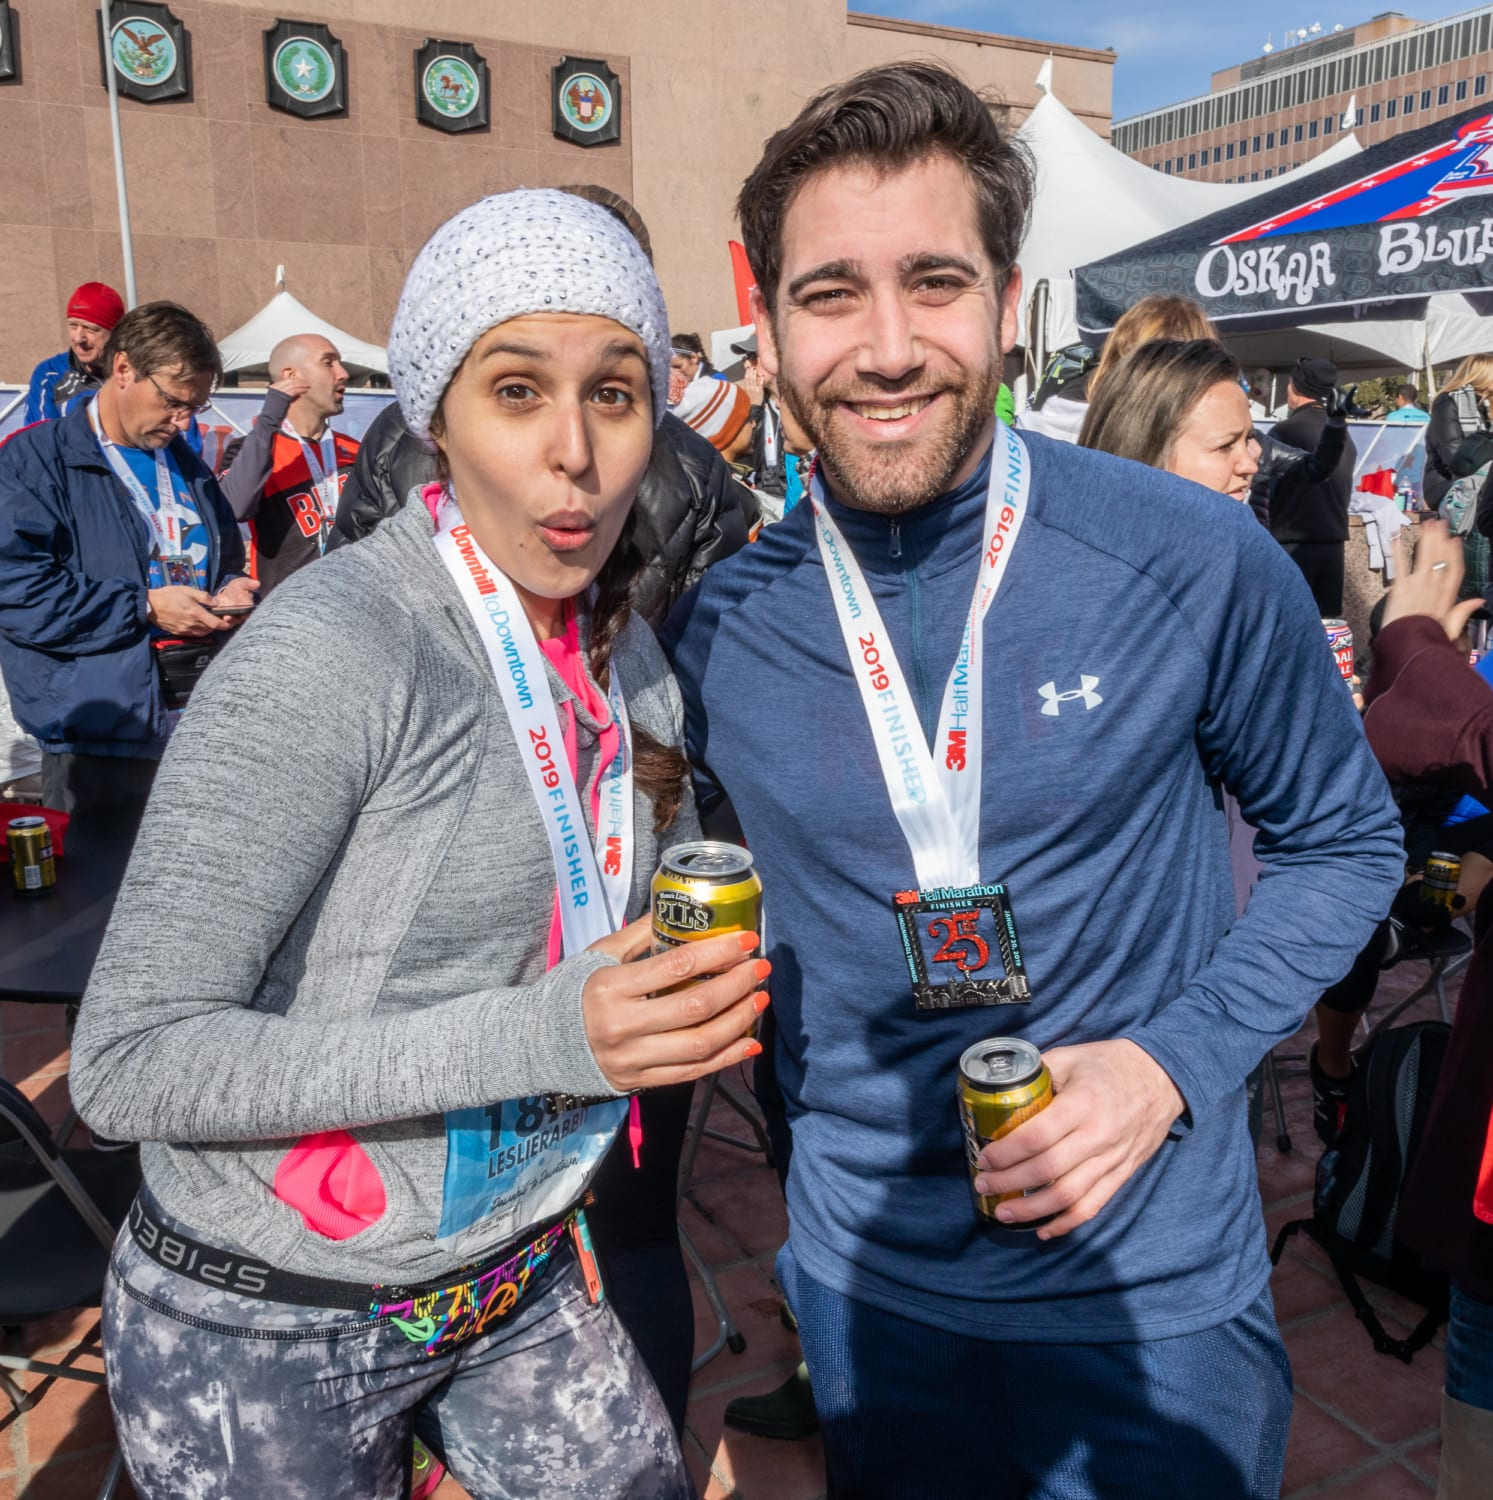 Participants celebrate their accomplishment in the beer garden, one reason people love 3M Half Marathon.